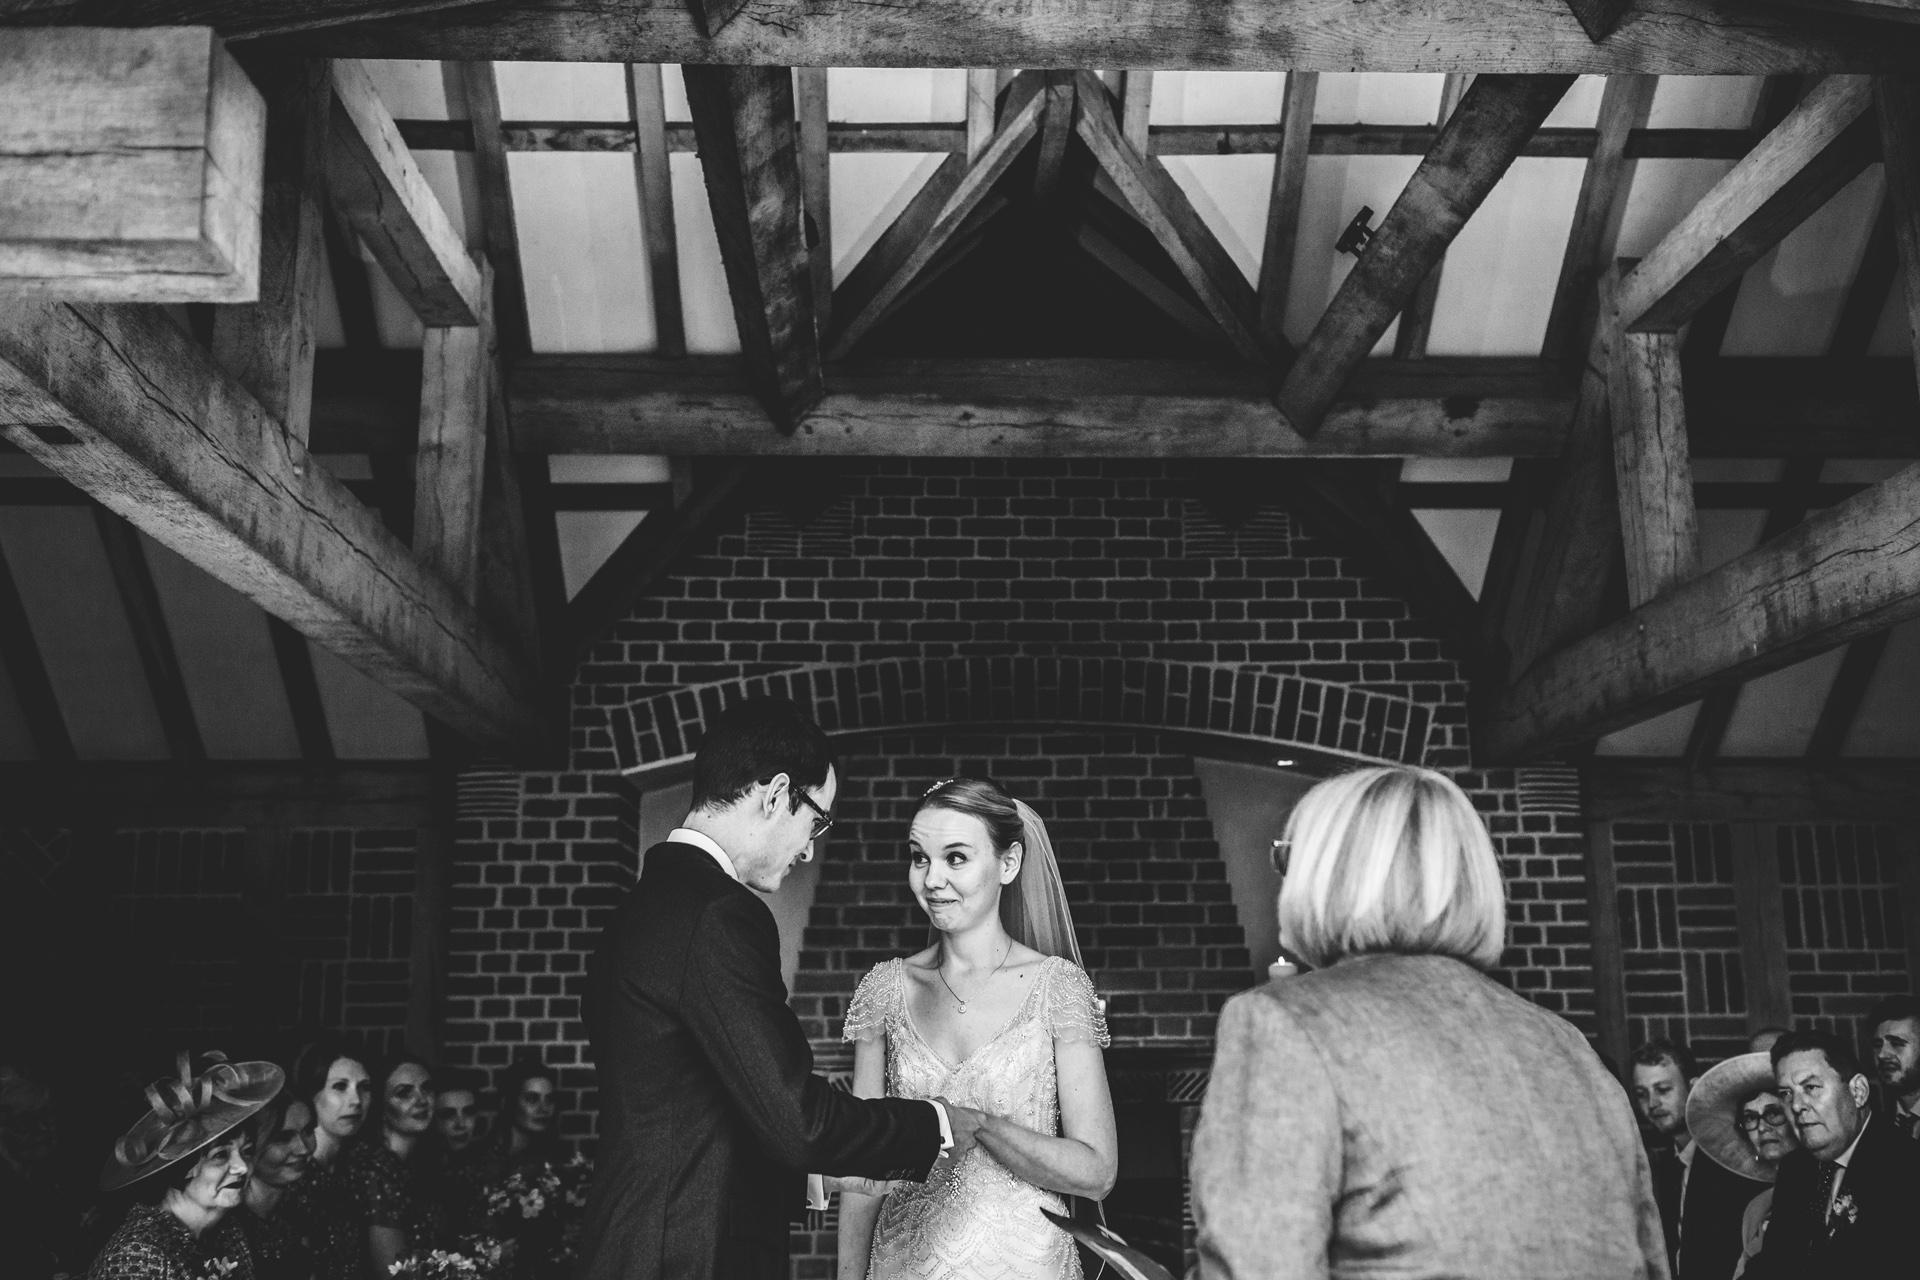 Bride and groom say their vows in an outdoor ceremony at Goldstone Hall, Market Drayton. Photograph in black and white.